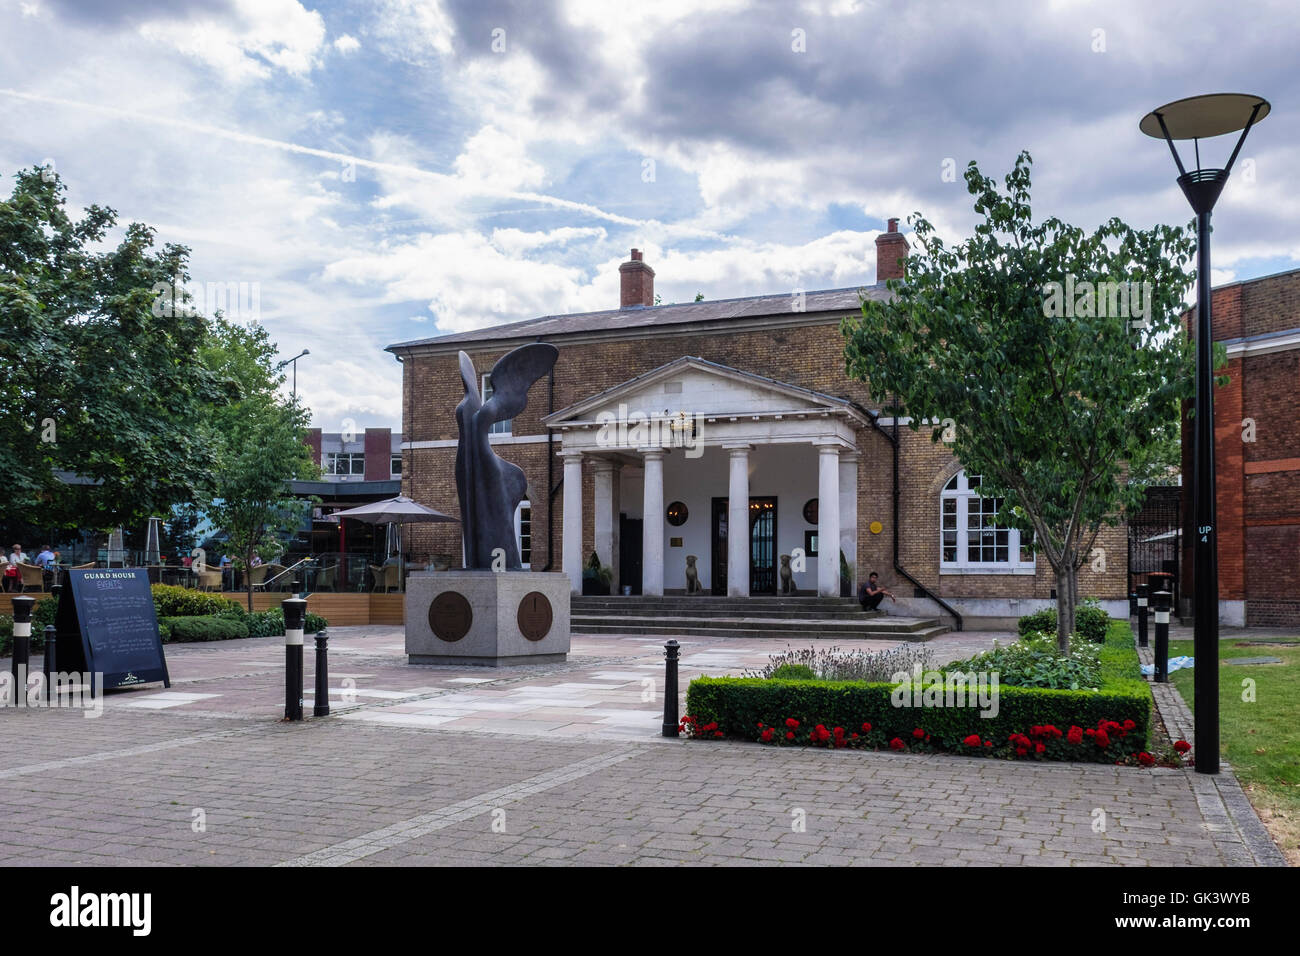 Restaurant Exterior Architecture - The guard house pub and restaurant exterior and abstract sculpture greek goddess of victory nike